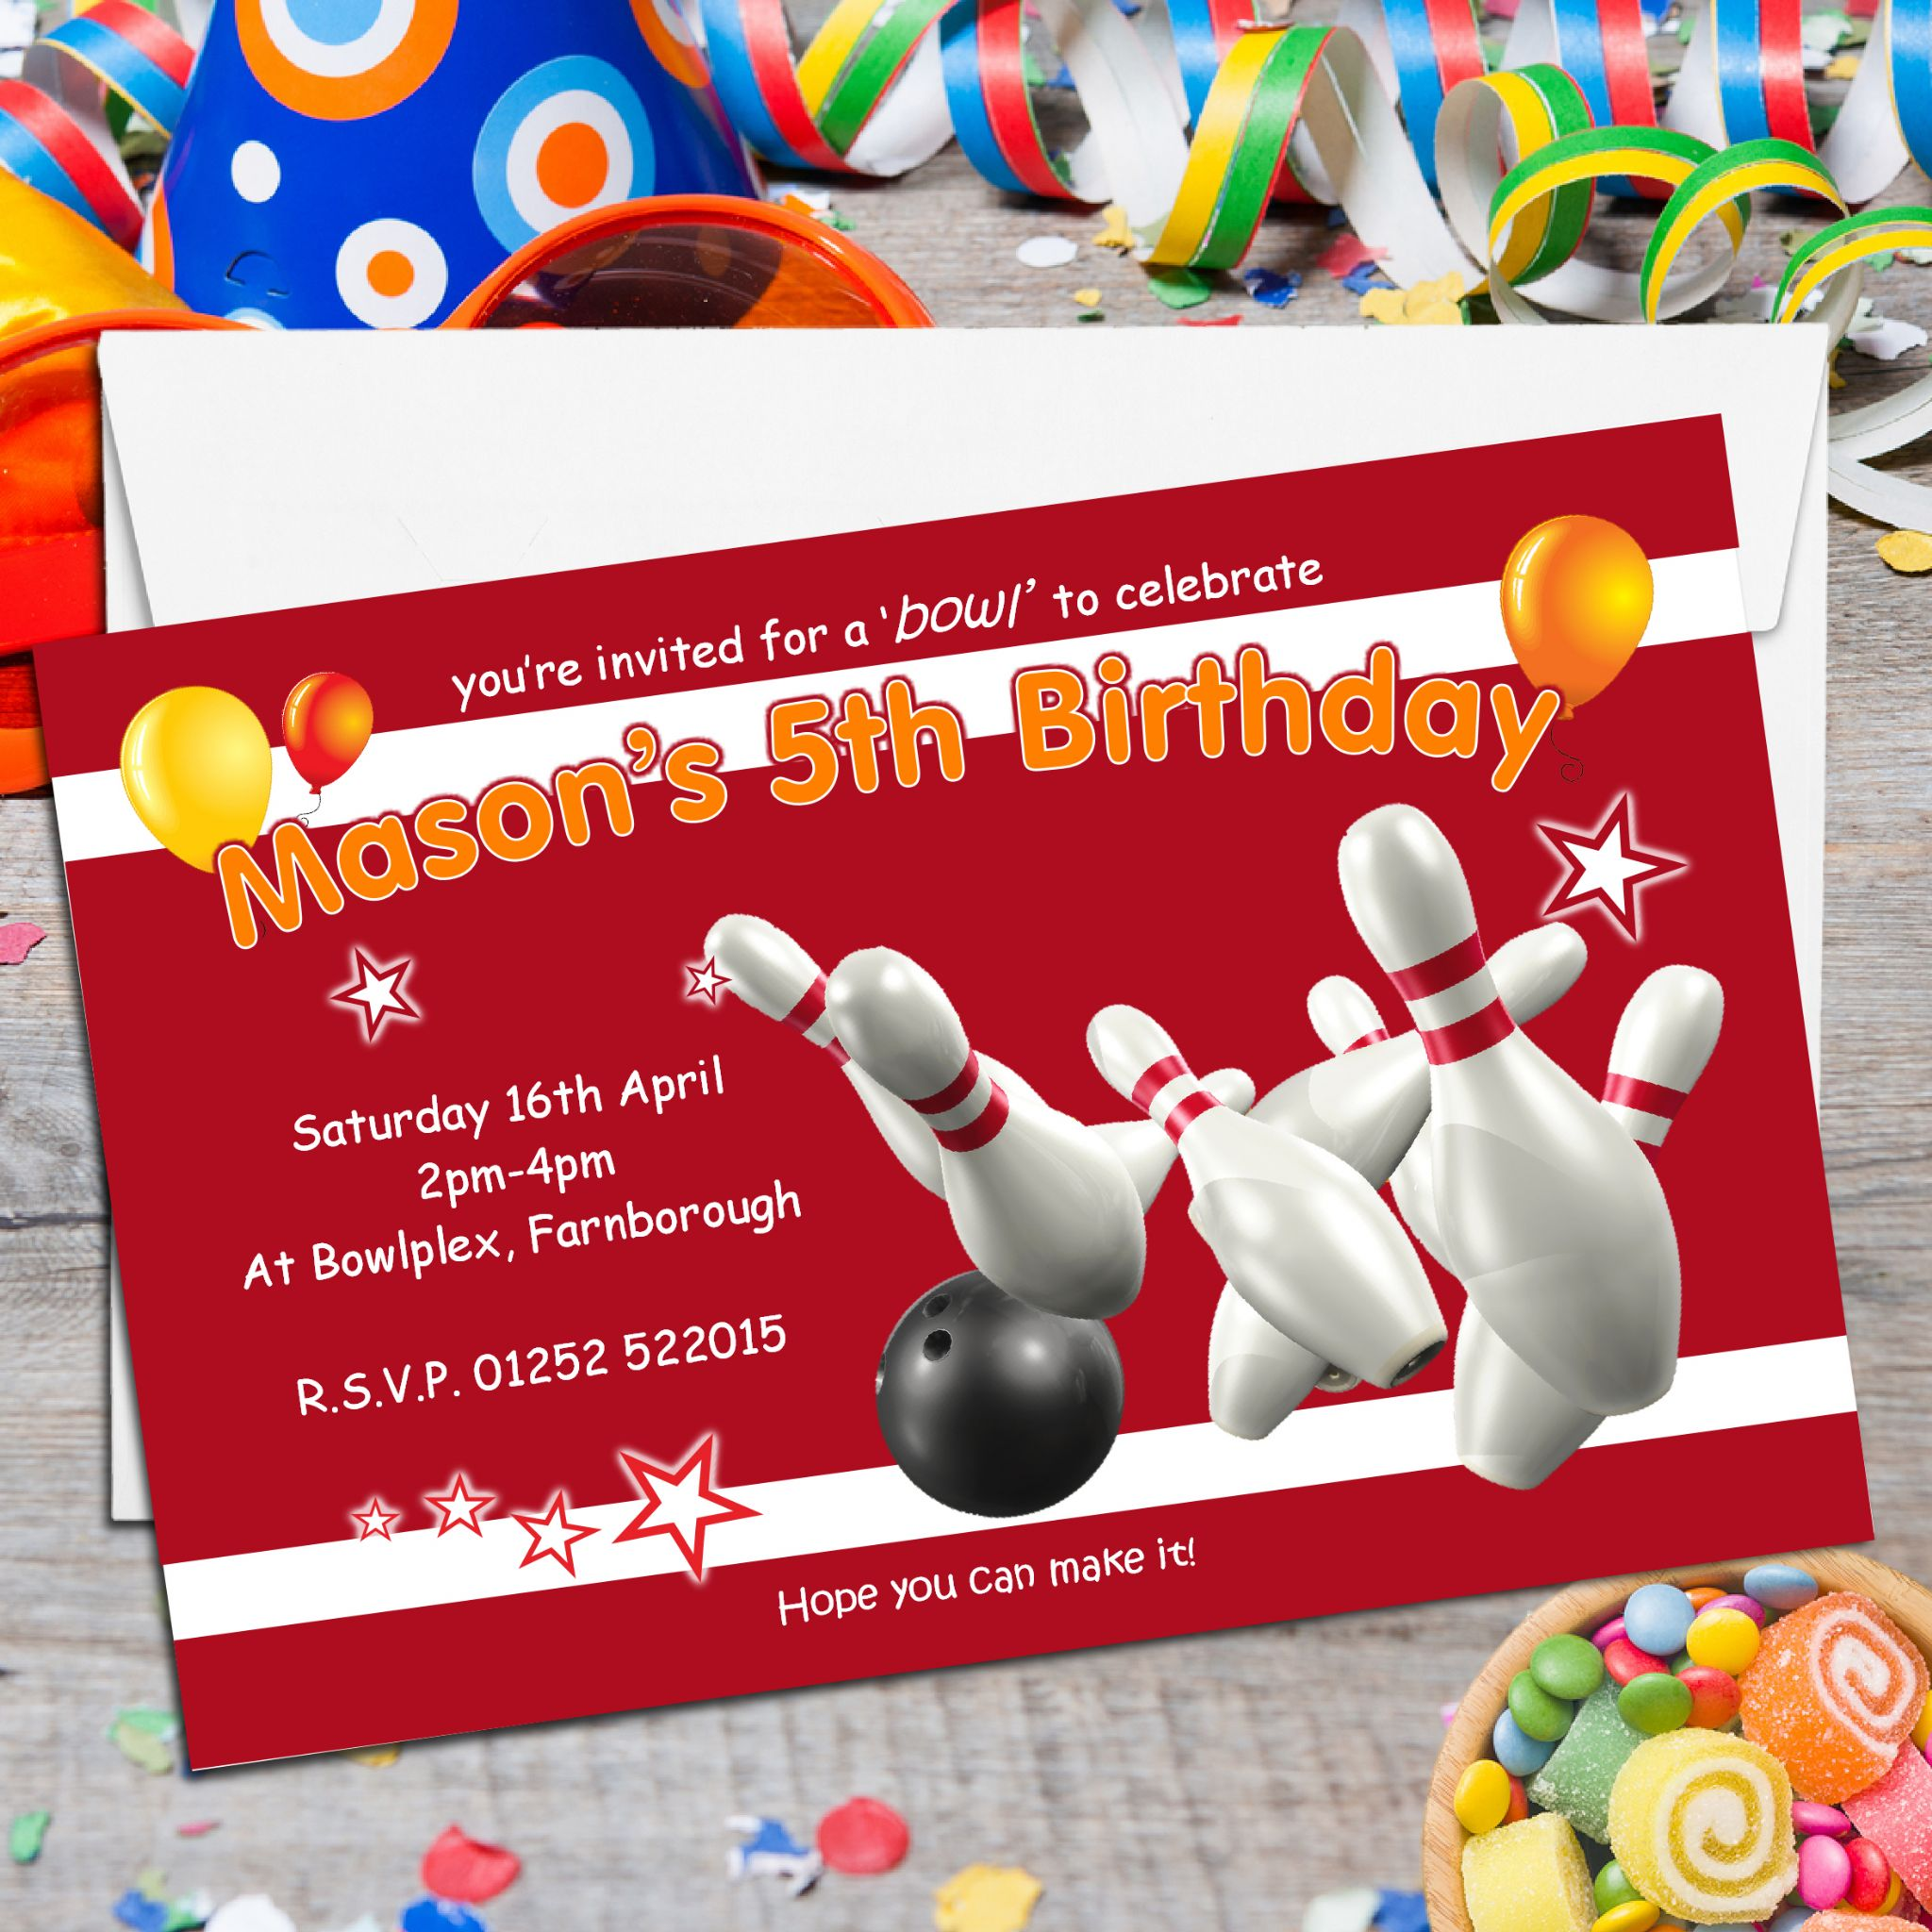 10 Personalised Ten Pin Bowling Birthday Party Invitations N122